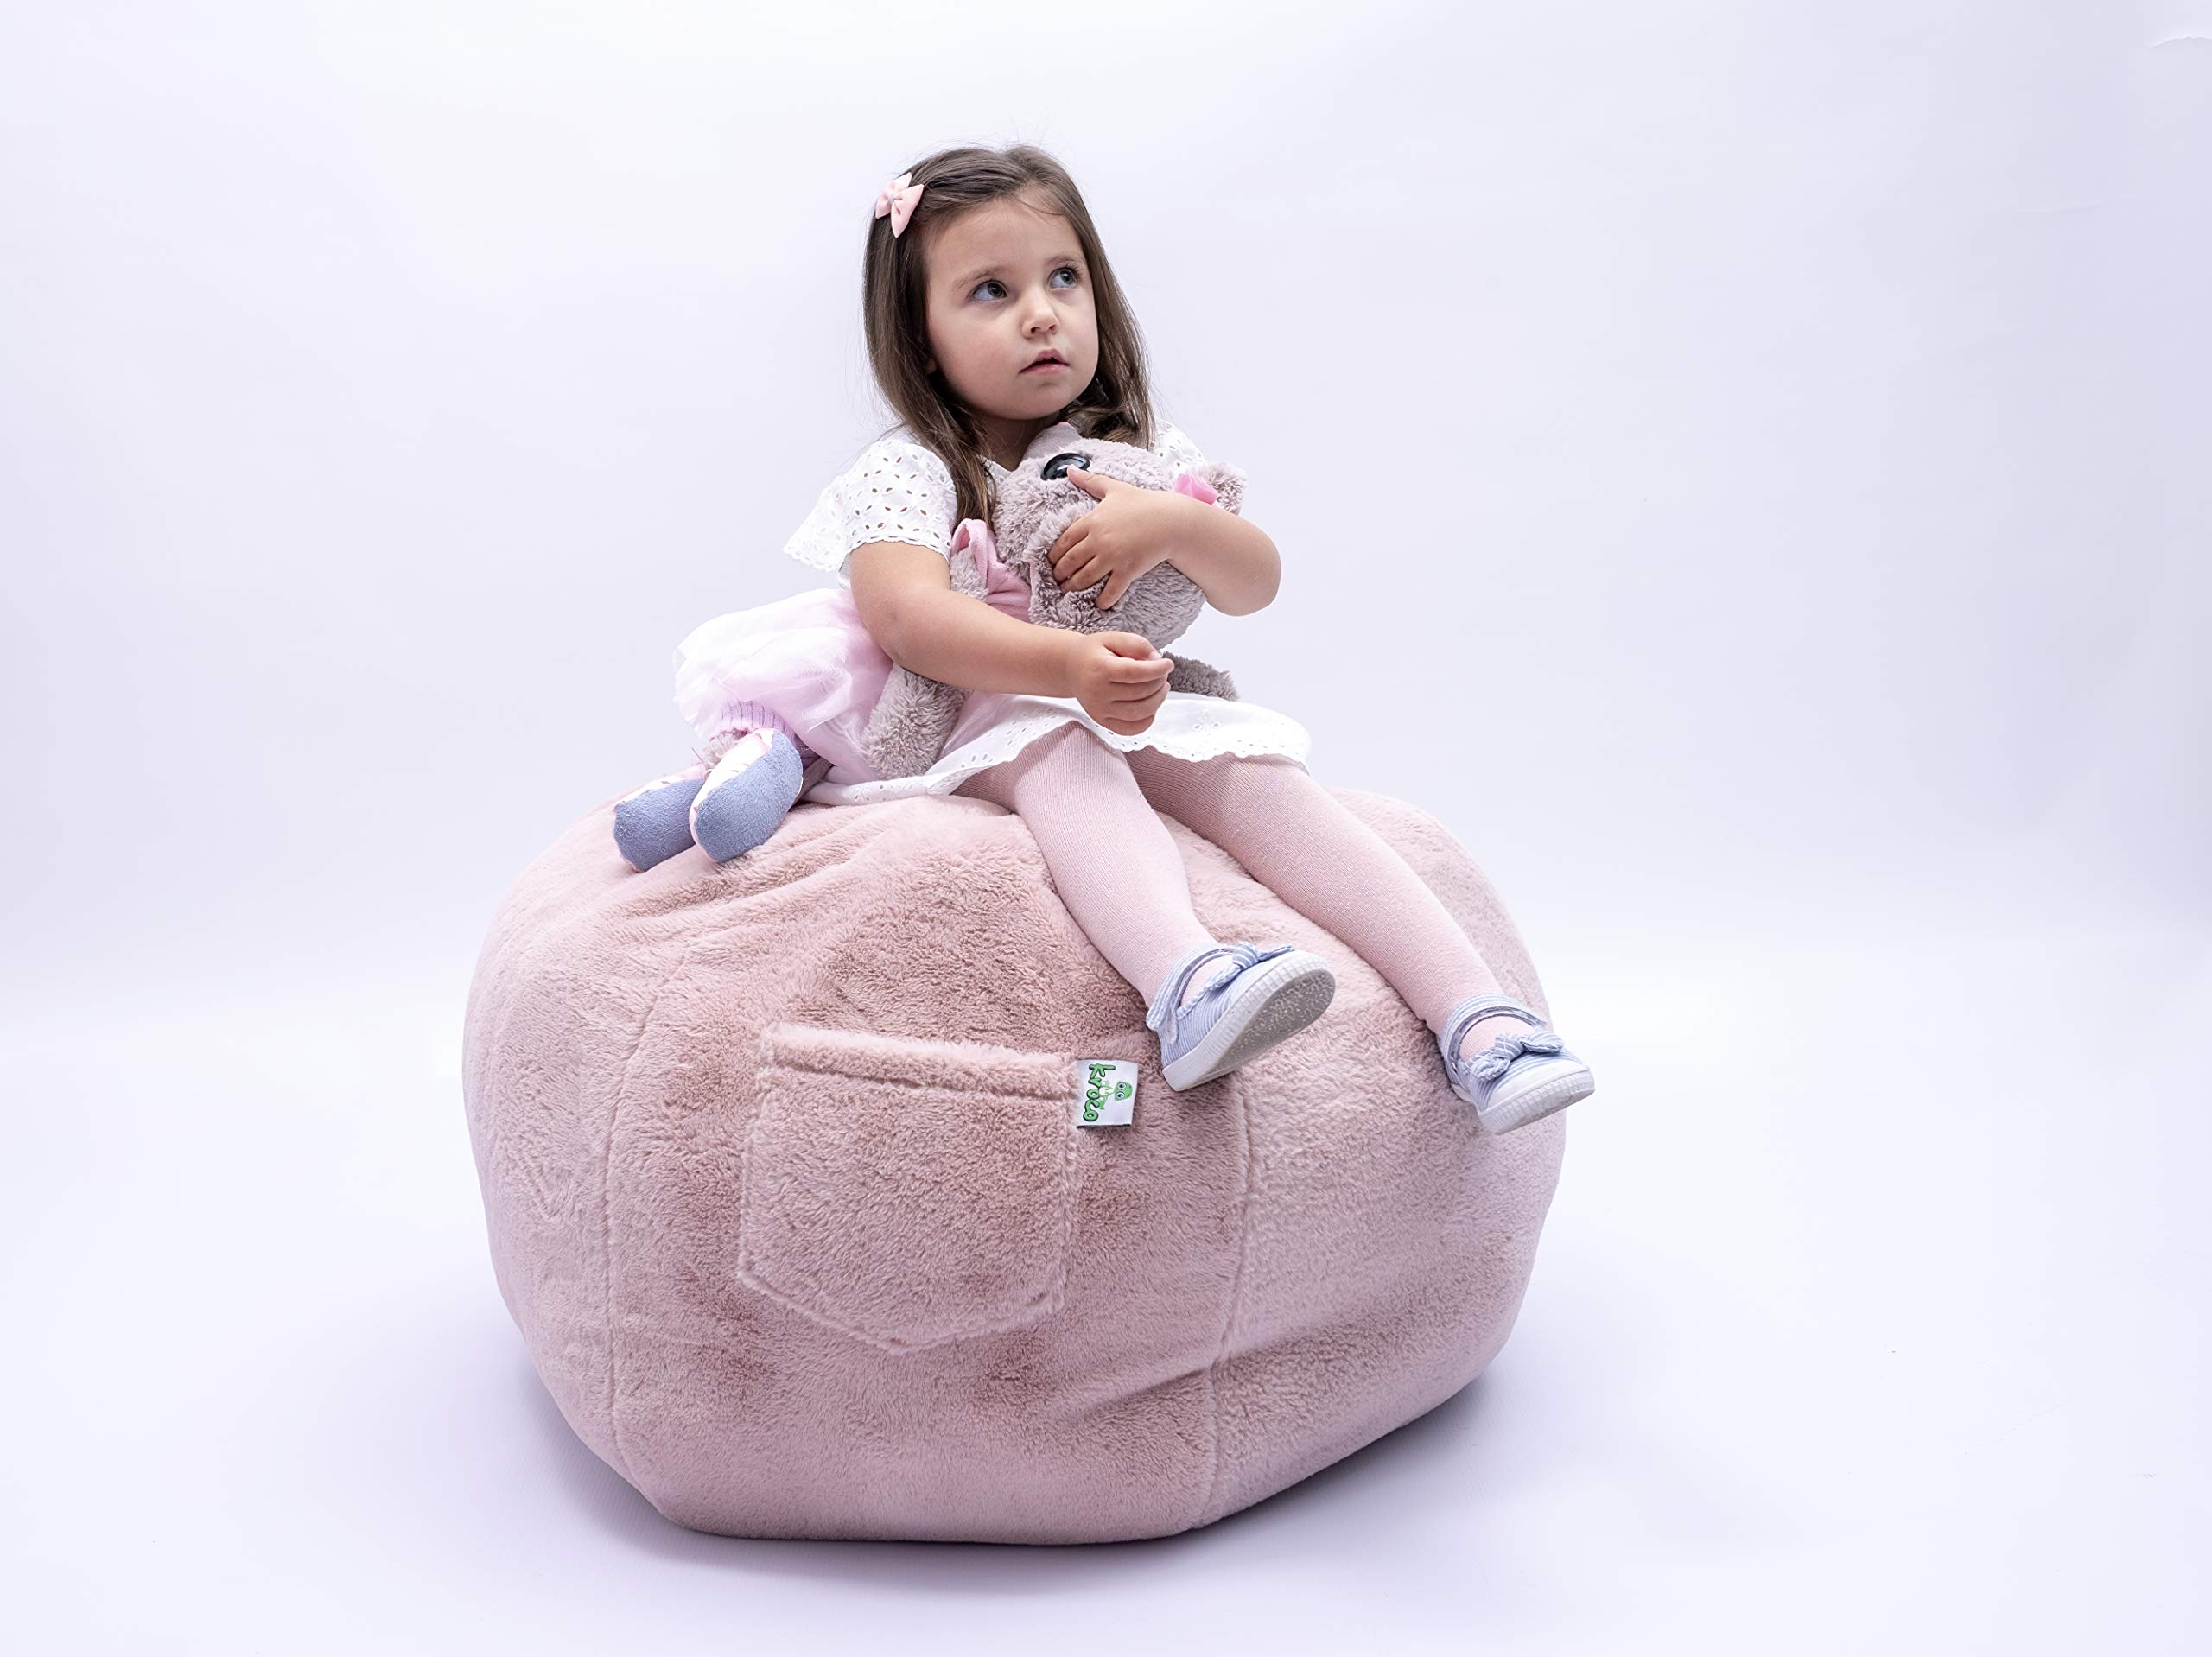 Kroco Luxury Edition Stuffed Animal Storage Bean Bag Cover - Toy Storage Beanbag - Stuffing Bean Bag for Kids - Super Soft Plush Faux Bean Bag Storage - Replace Toys Mesh Toys Hammock Net - 38´´Pink by Kroco